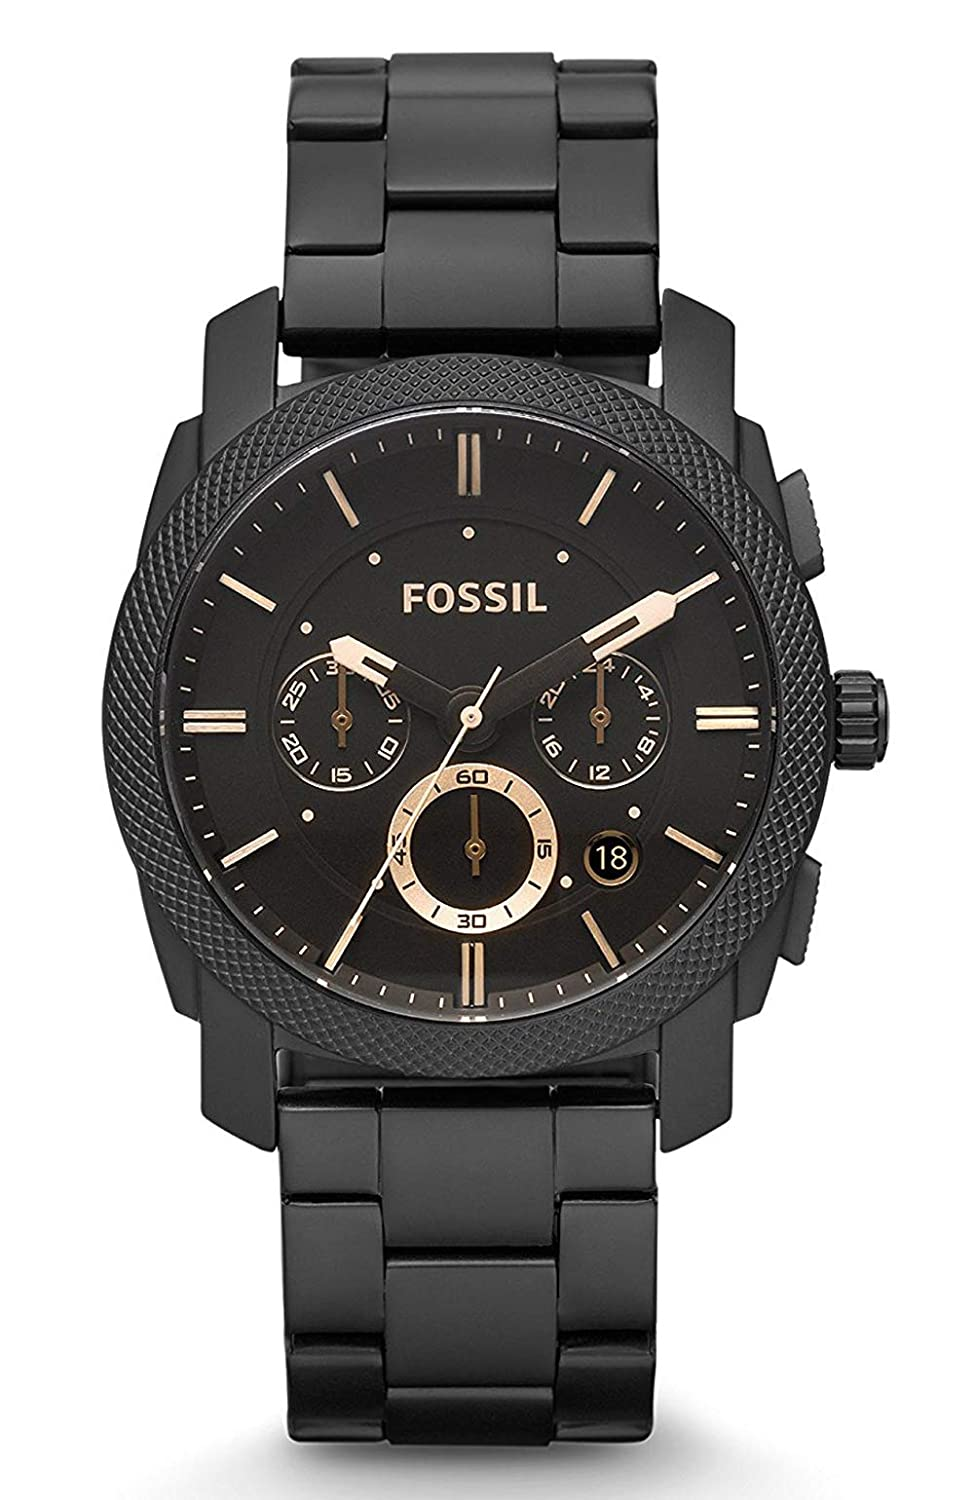 Fossil FS4682 Machine Black Dial Chronograph Watch for Men